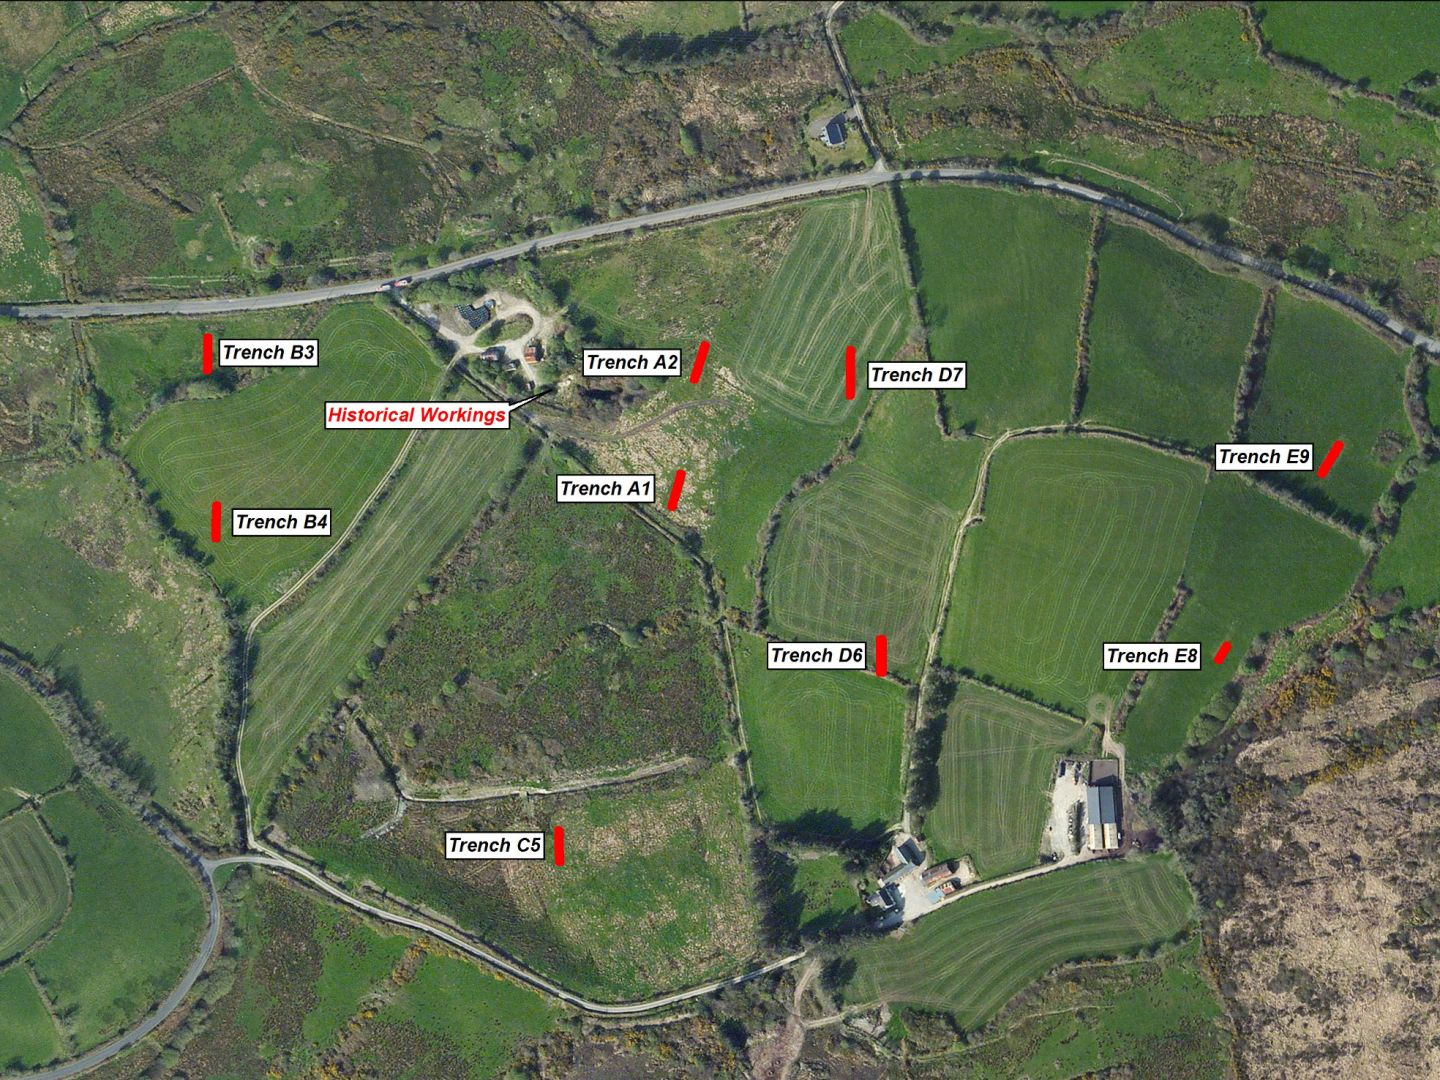 Derryginagh Trenching Locations